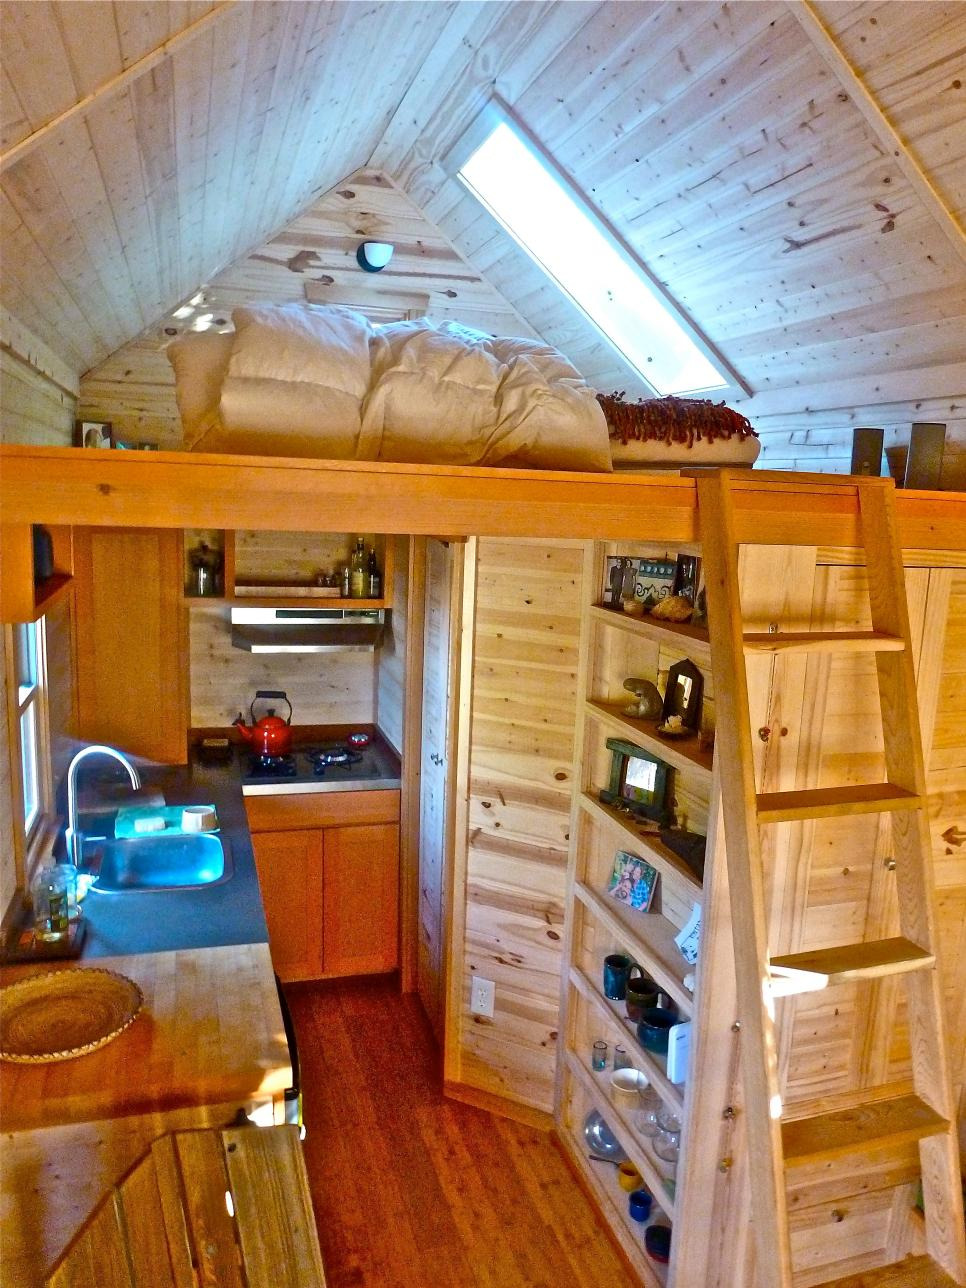 Hgtv House Plans Designs Beautiful Extreme Tiny Homes From Hgtv Remodels Home Small